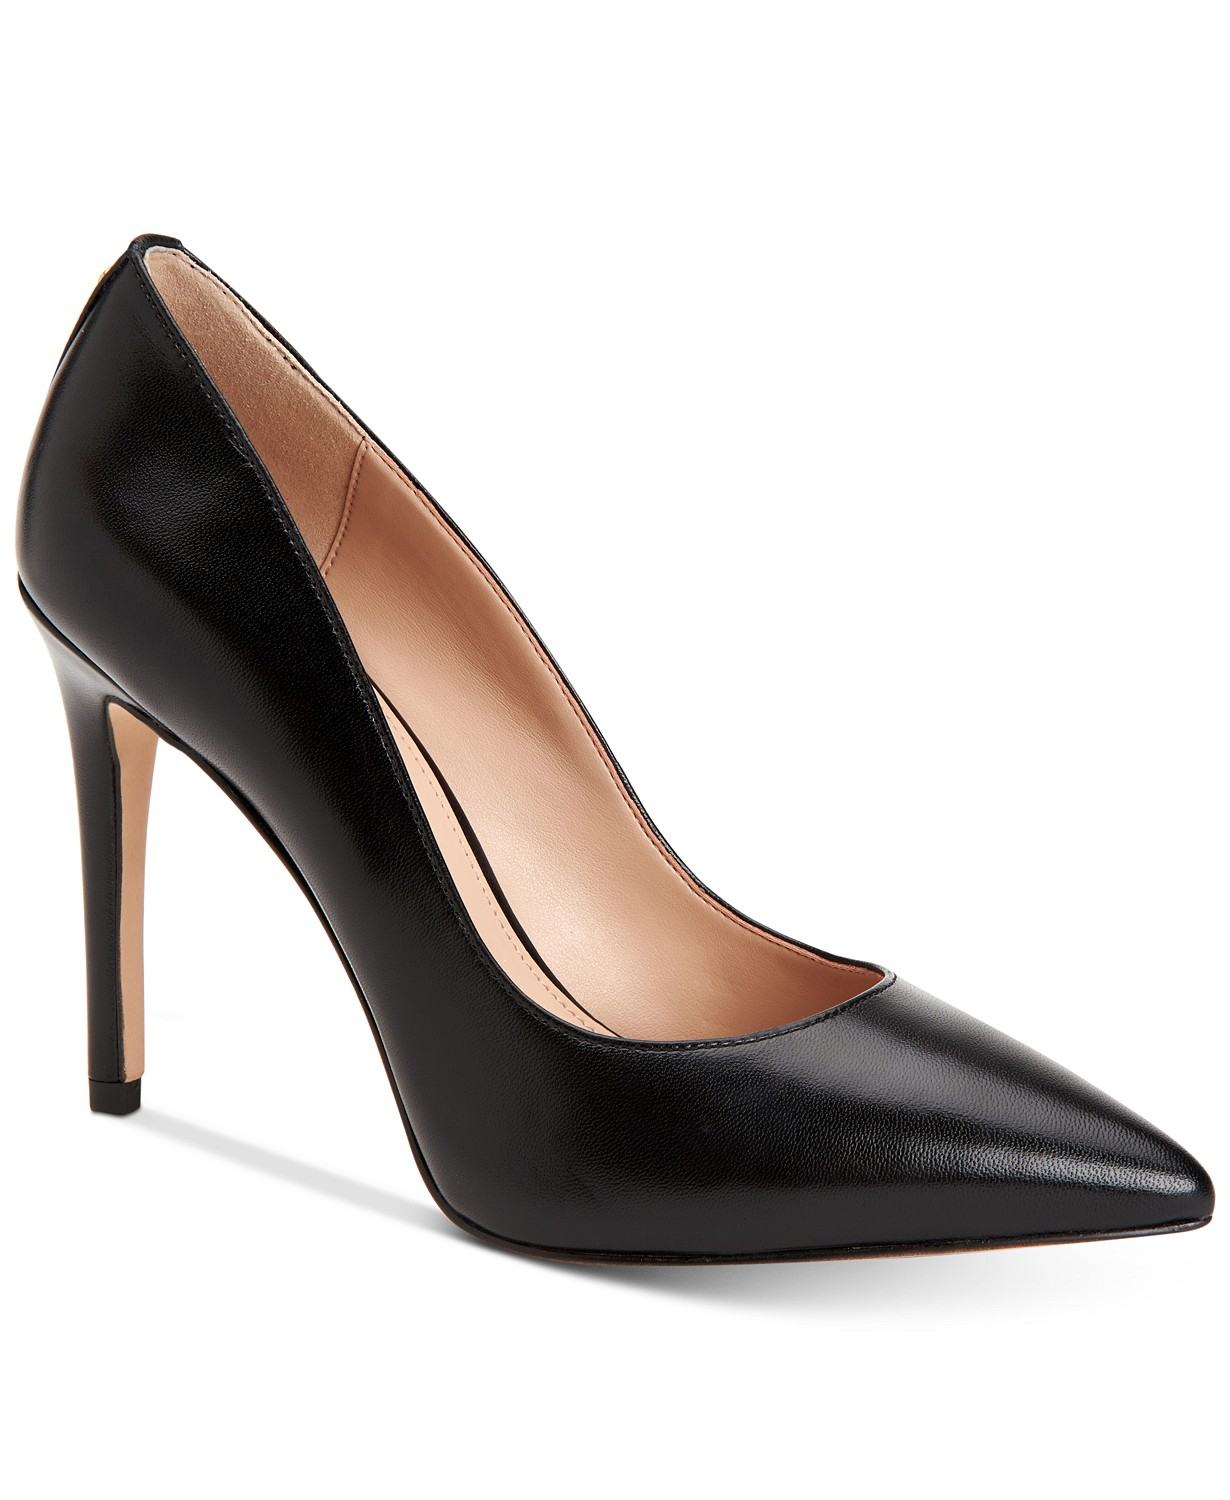 02a2c8e126 BCBGeneration Heidi Classic Pointed-Toe Pumps - Locolow